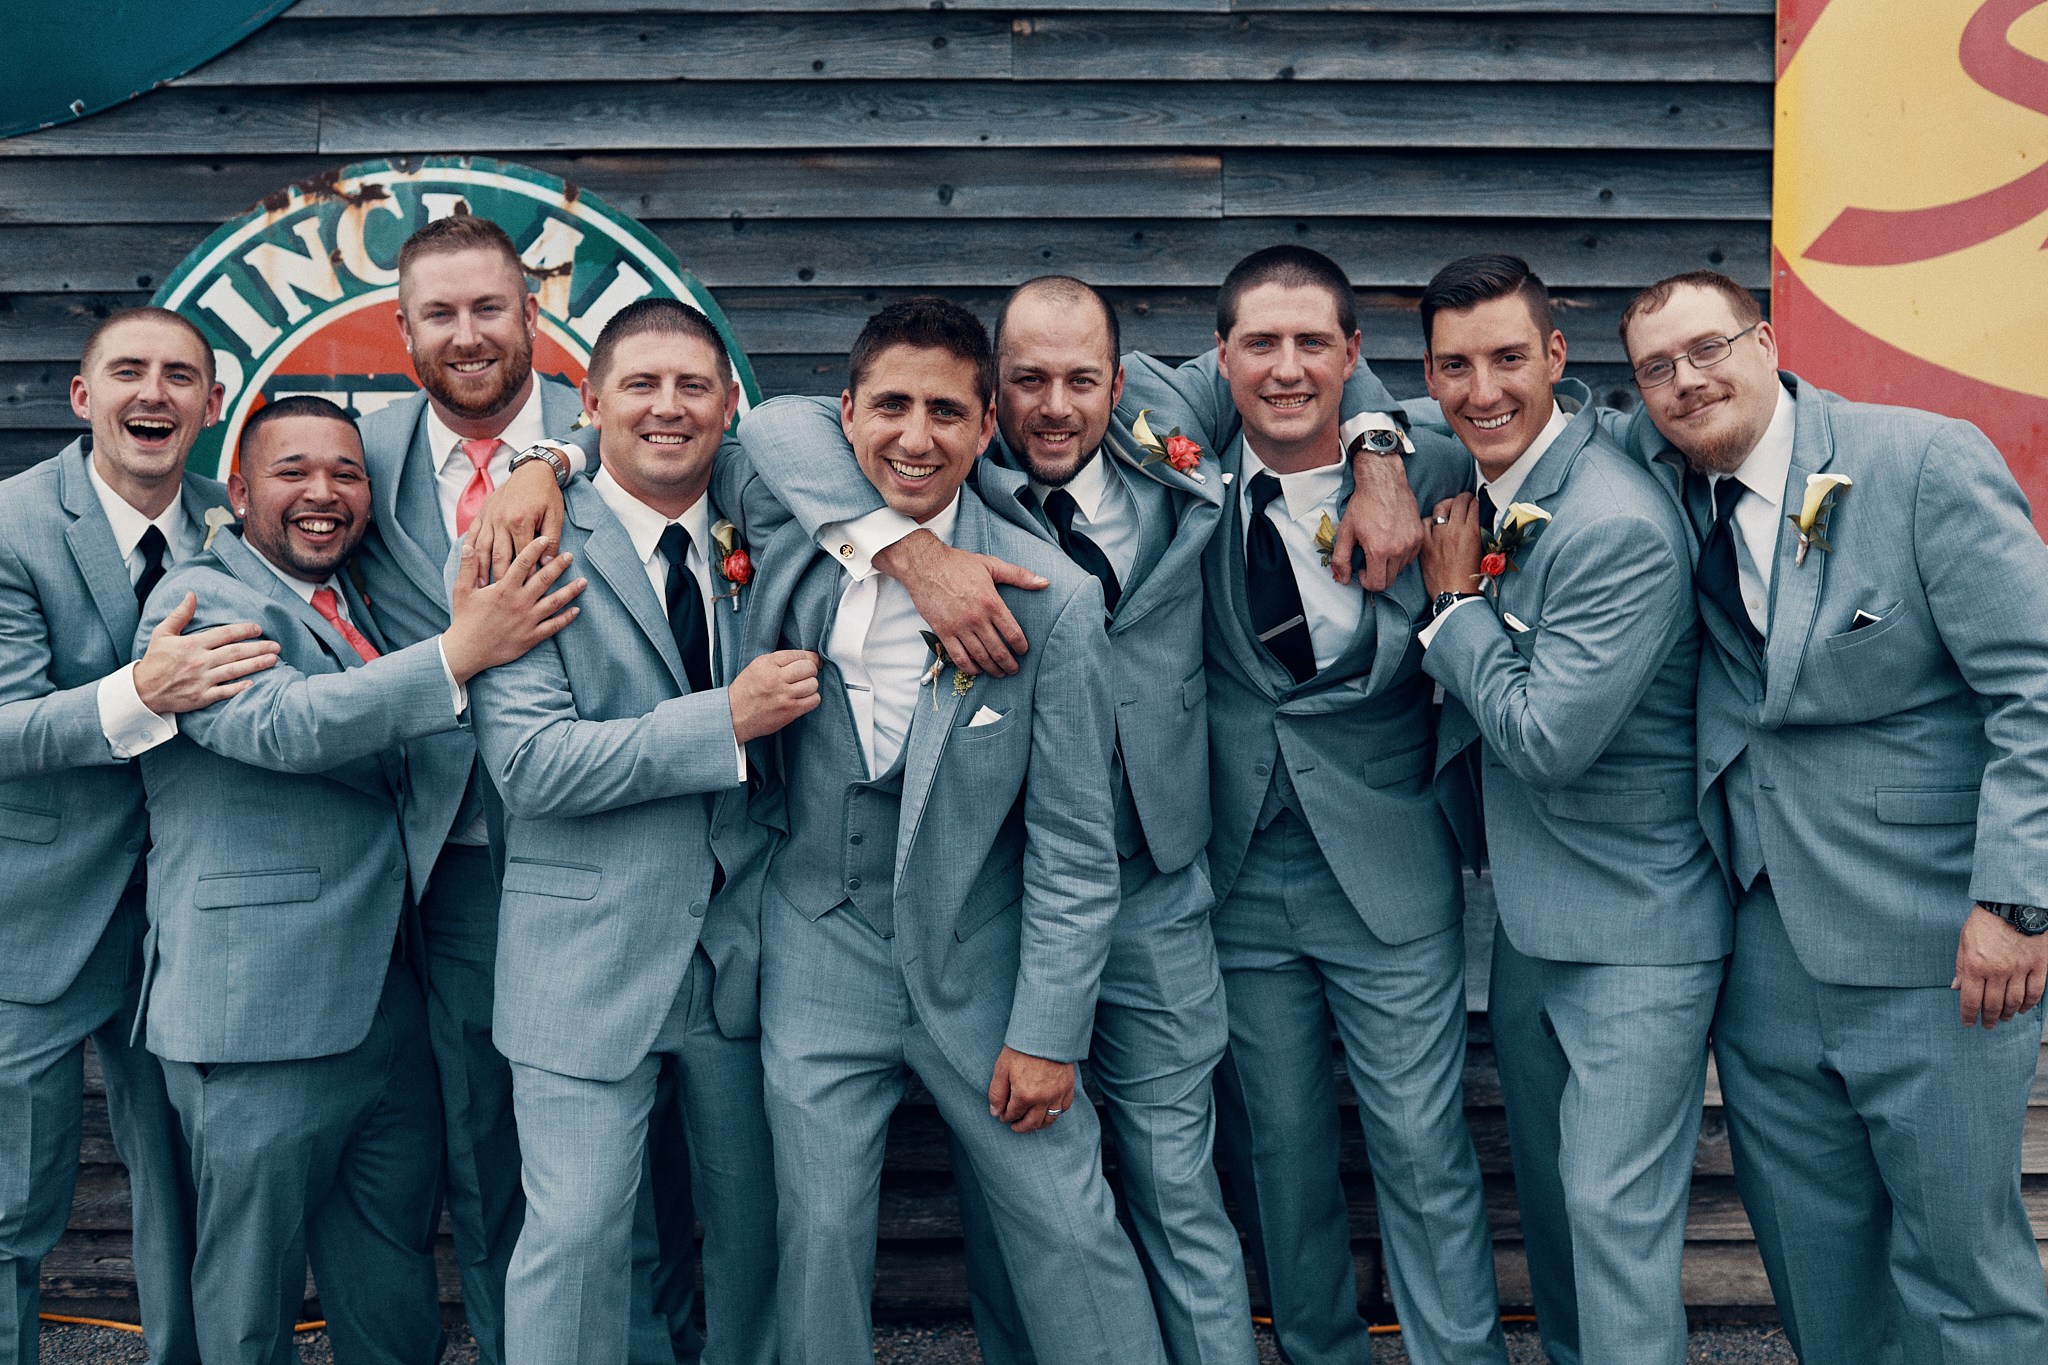 Suits_Groomsman_Photography_The_Little_Log_House_Hastings_By_High_End_Minneapolis_Brand_Photographer_Something_Candid_045.JPG